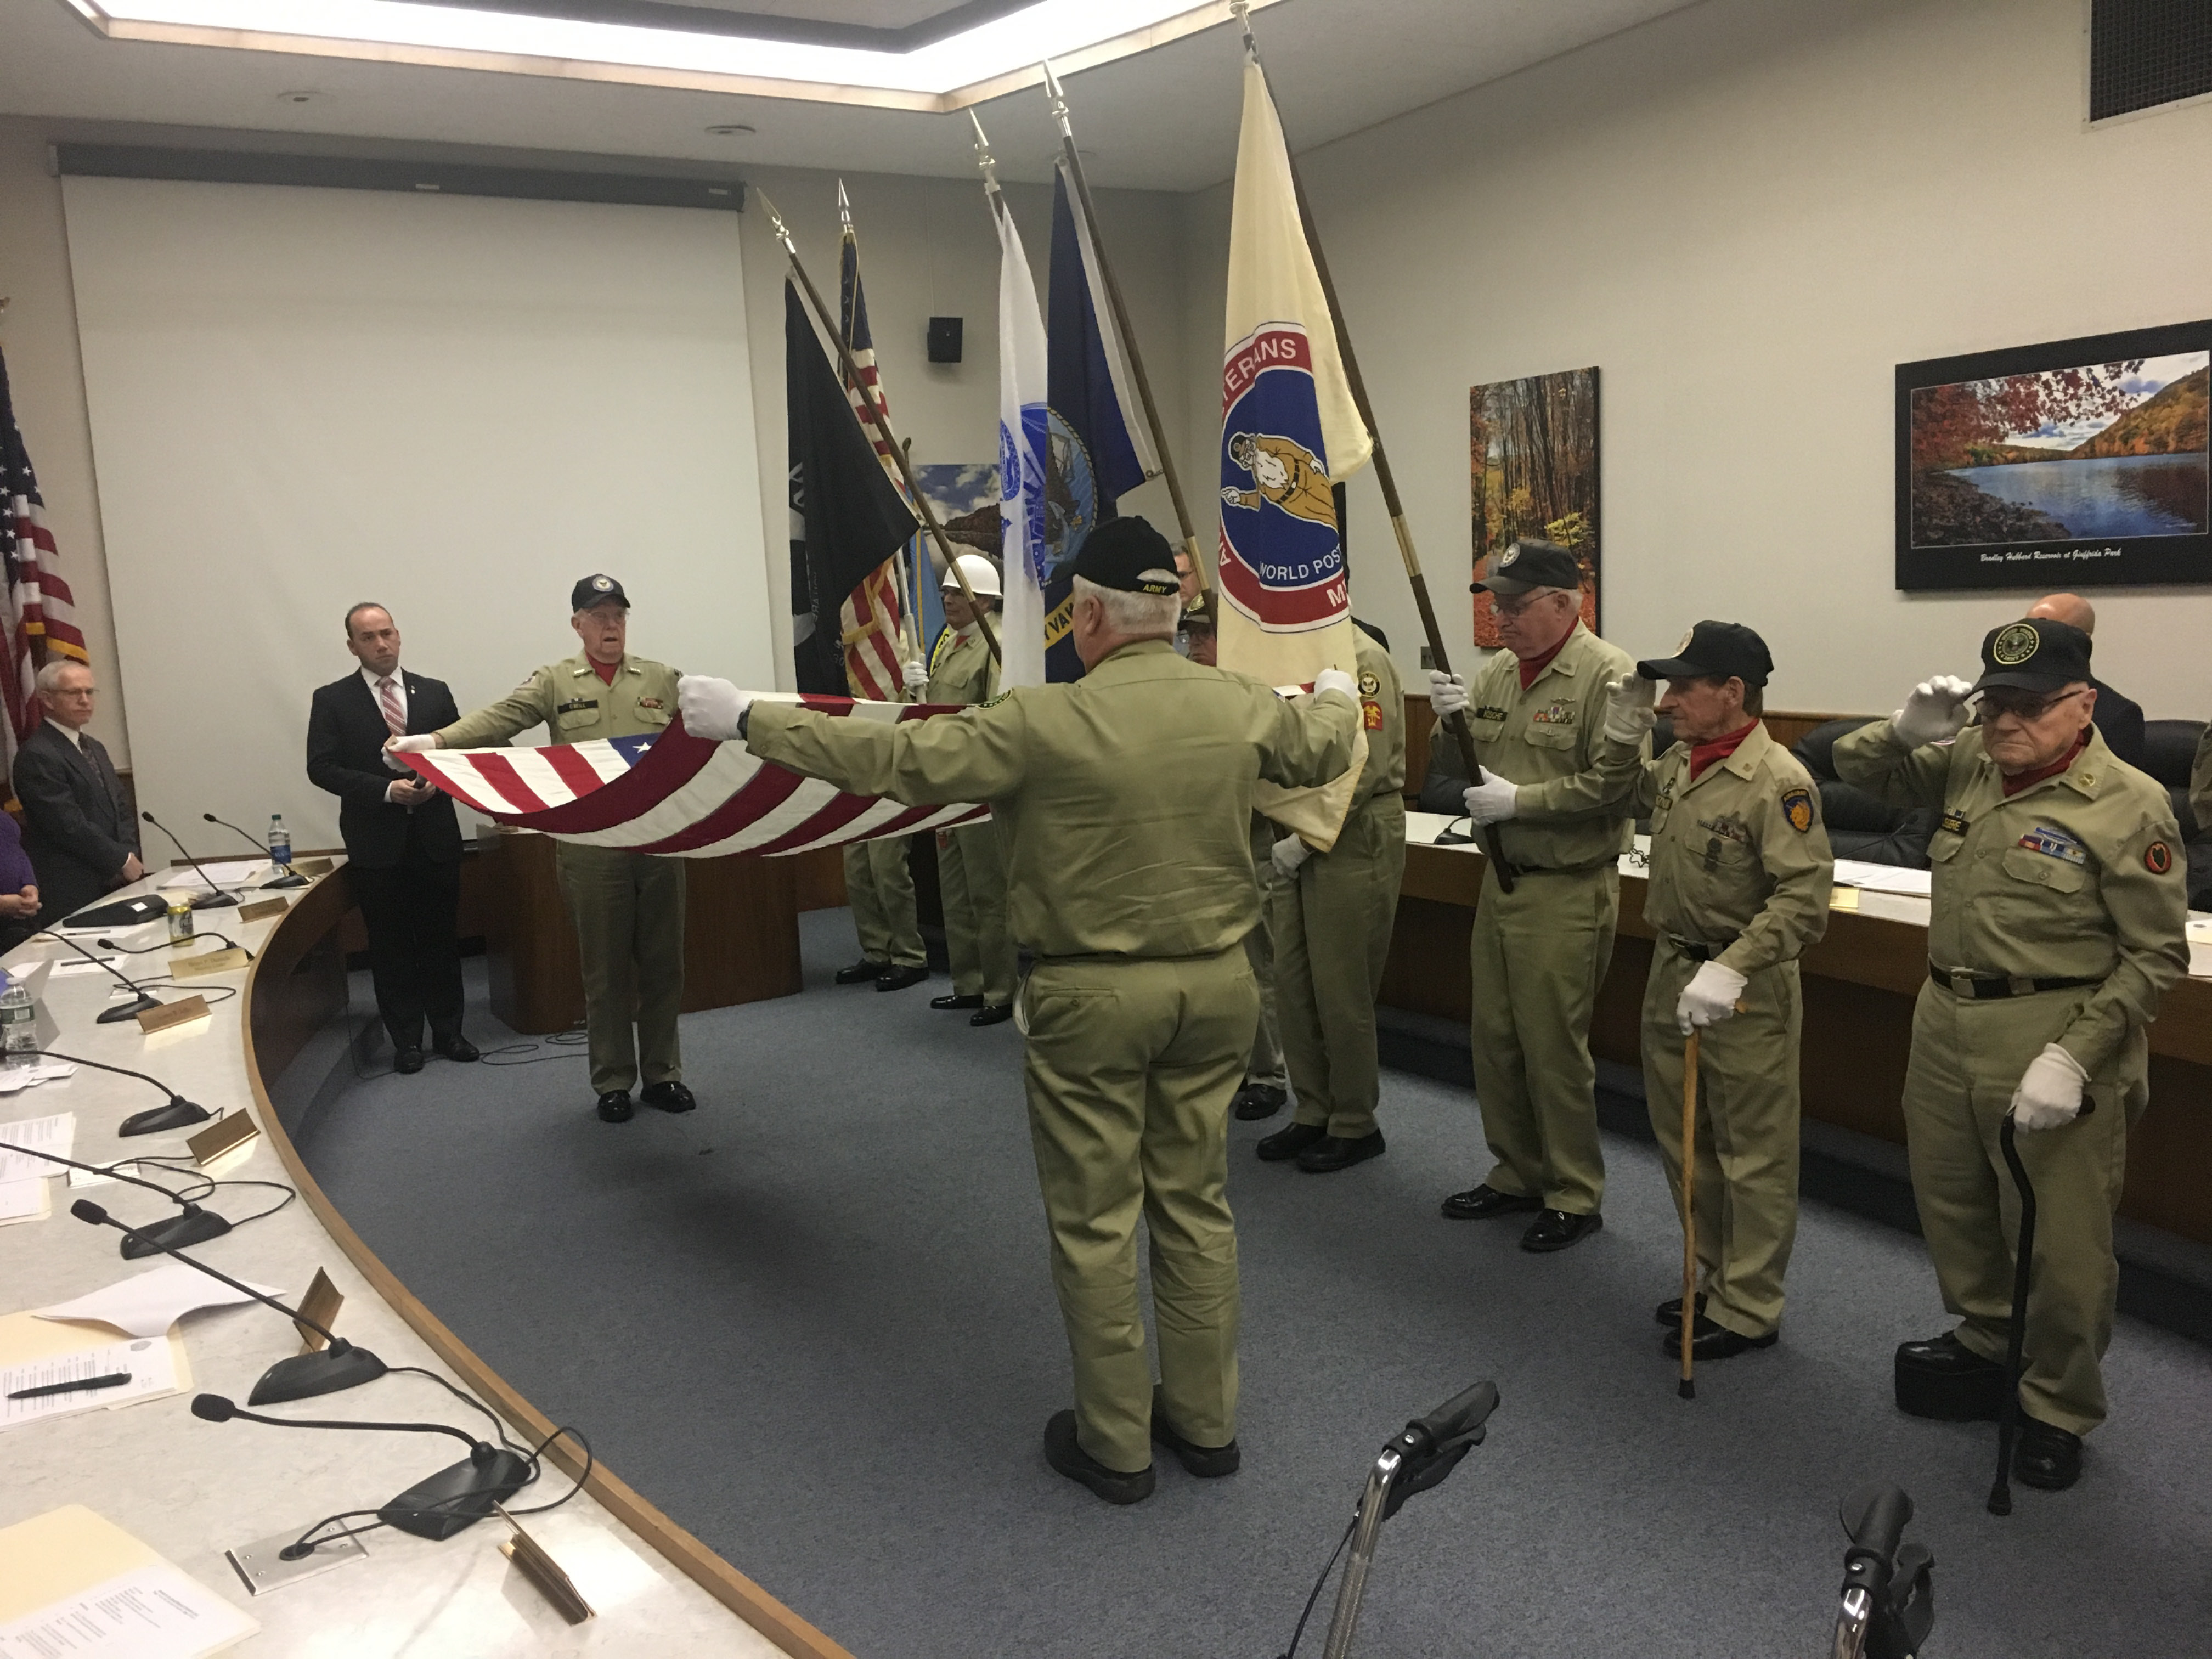 Meriden Antique Veterans demonstrate the service they provide at funerals at the Meriden City Council meeting, Monday, Feb. 6, 2017. | Leigh Tauss, Record-Journal